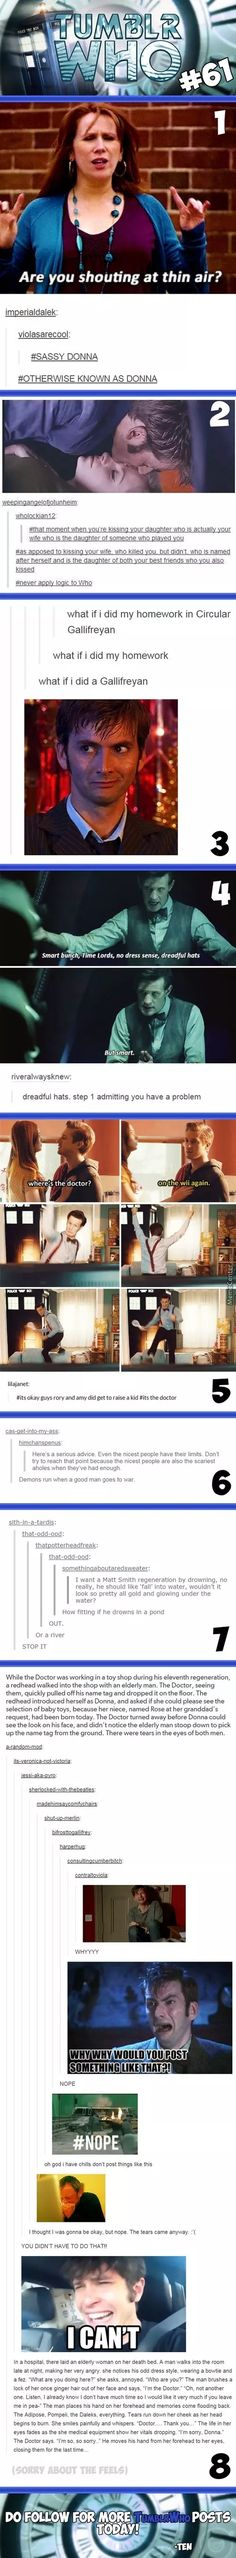 Doctor who tumblr #61